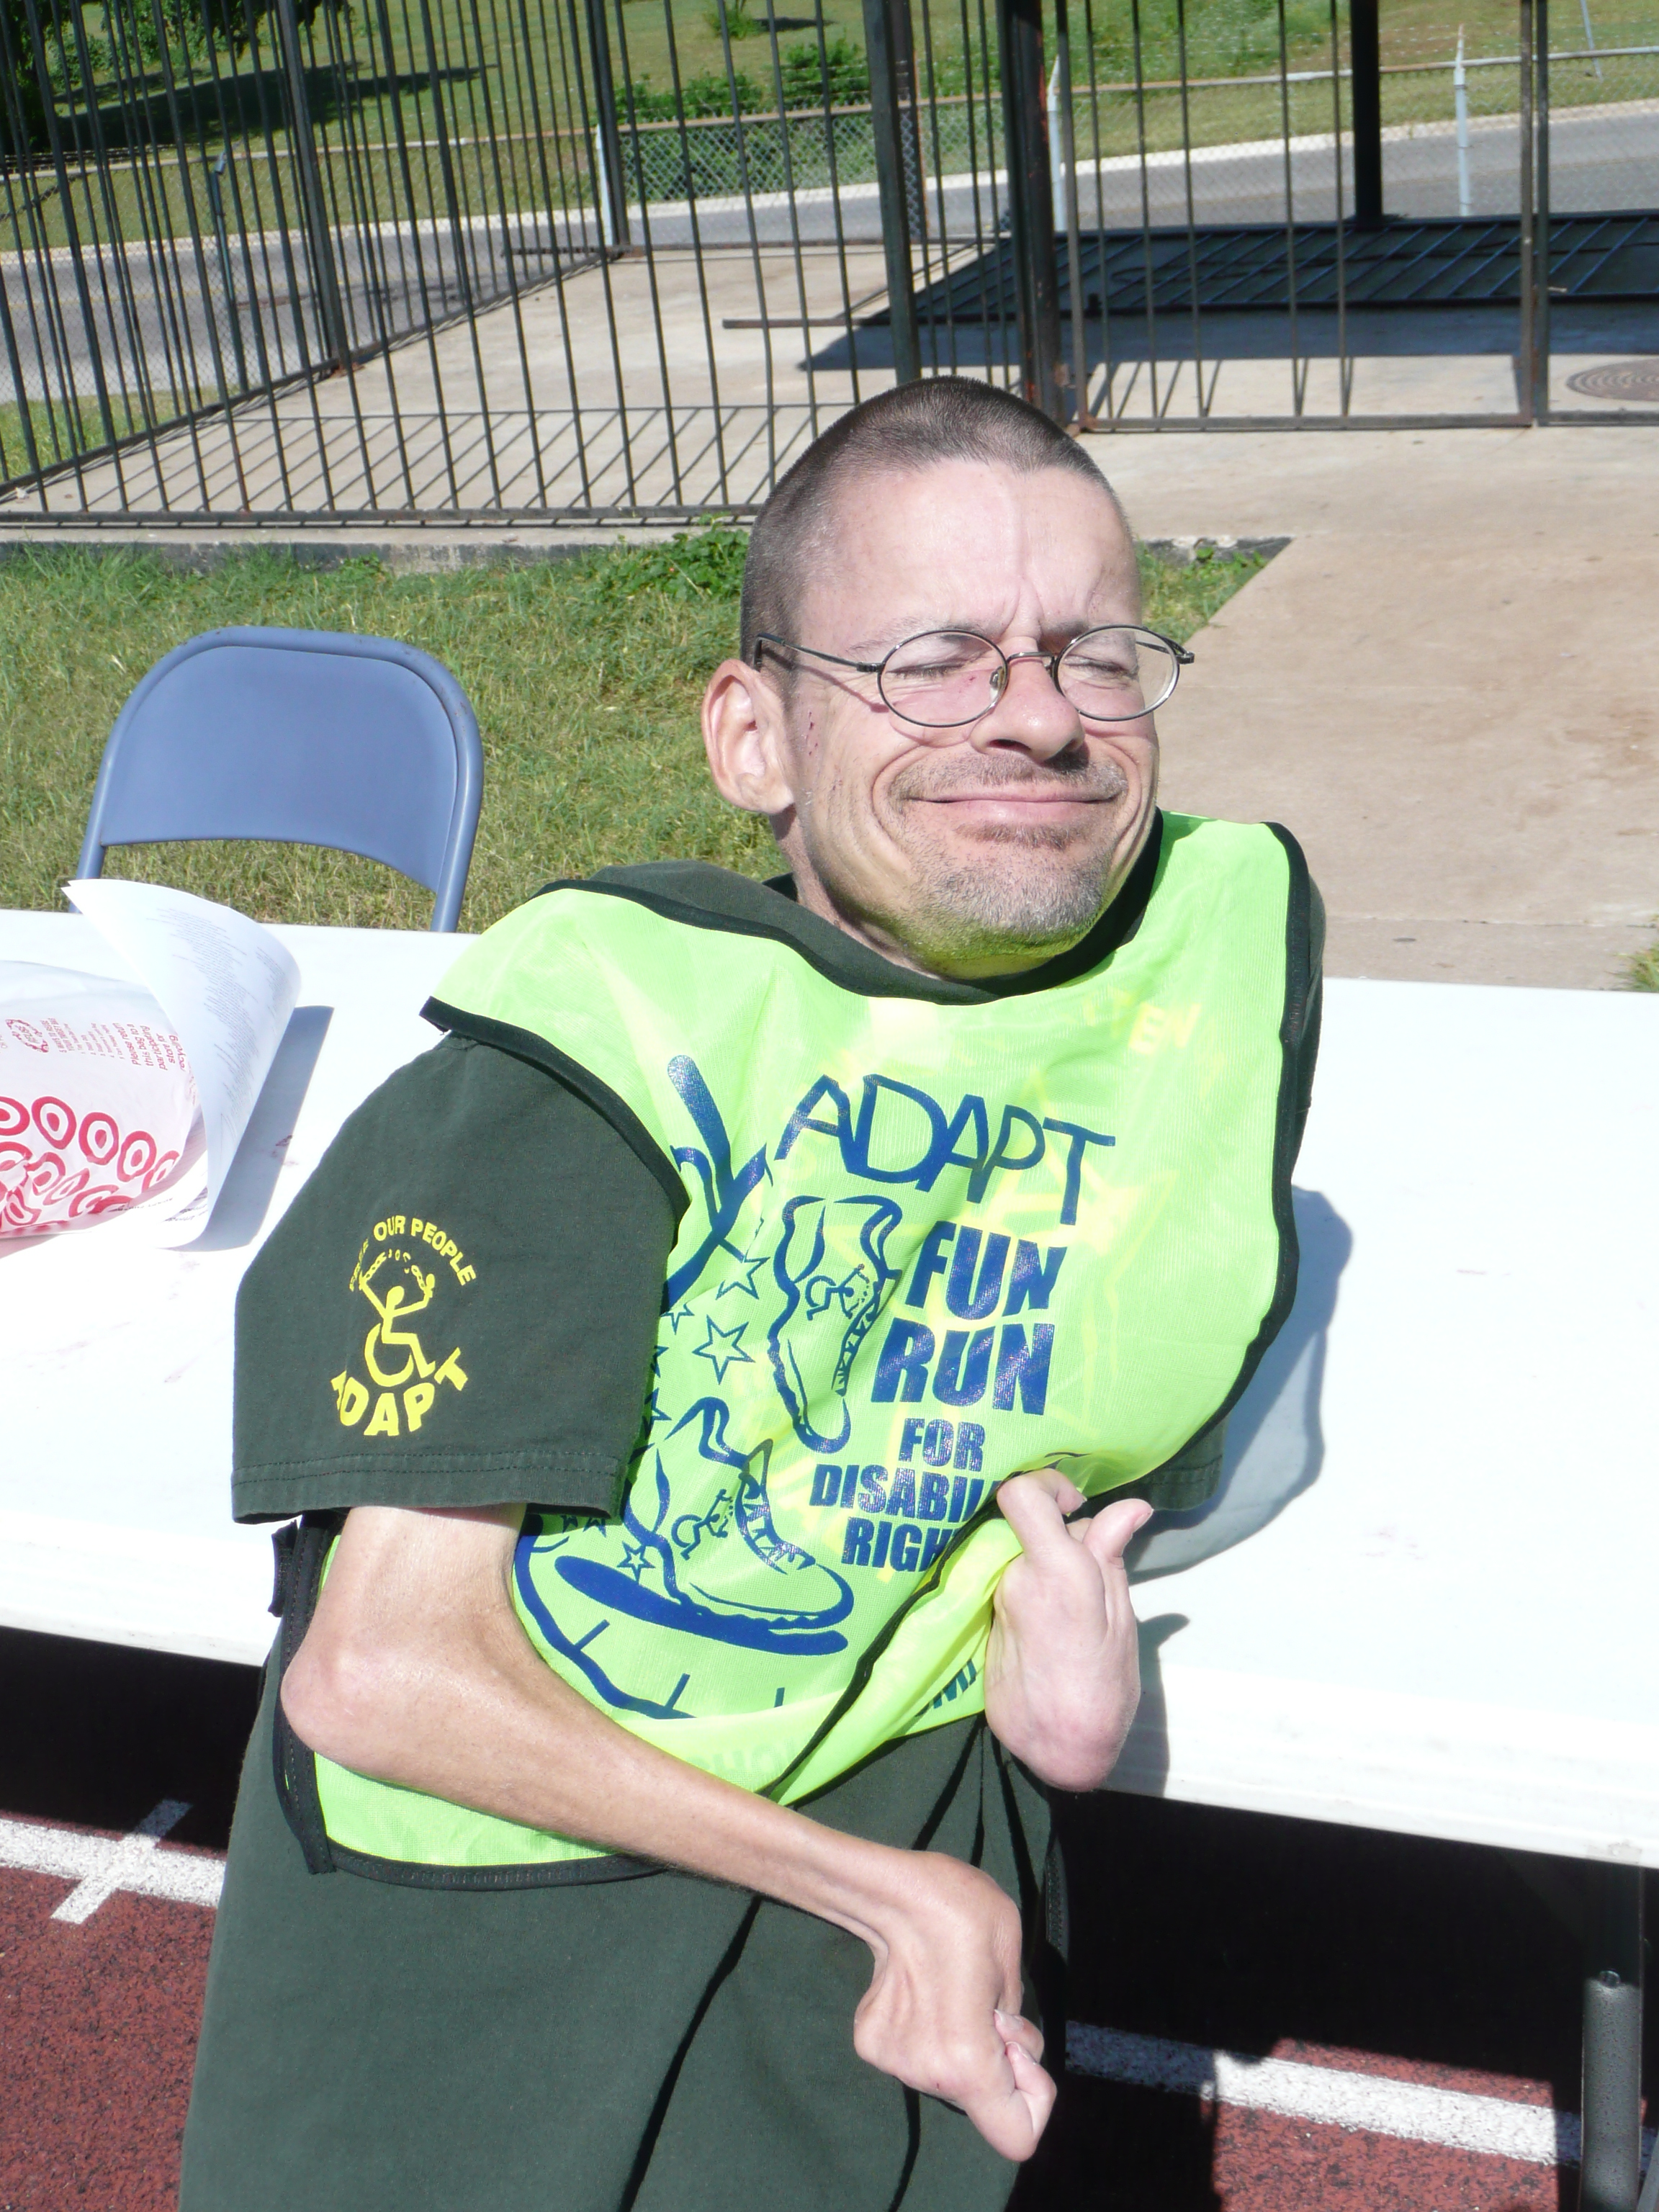 Bryson Smith leans back against a table. He is wearing his green FunRun vest and a big smile.